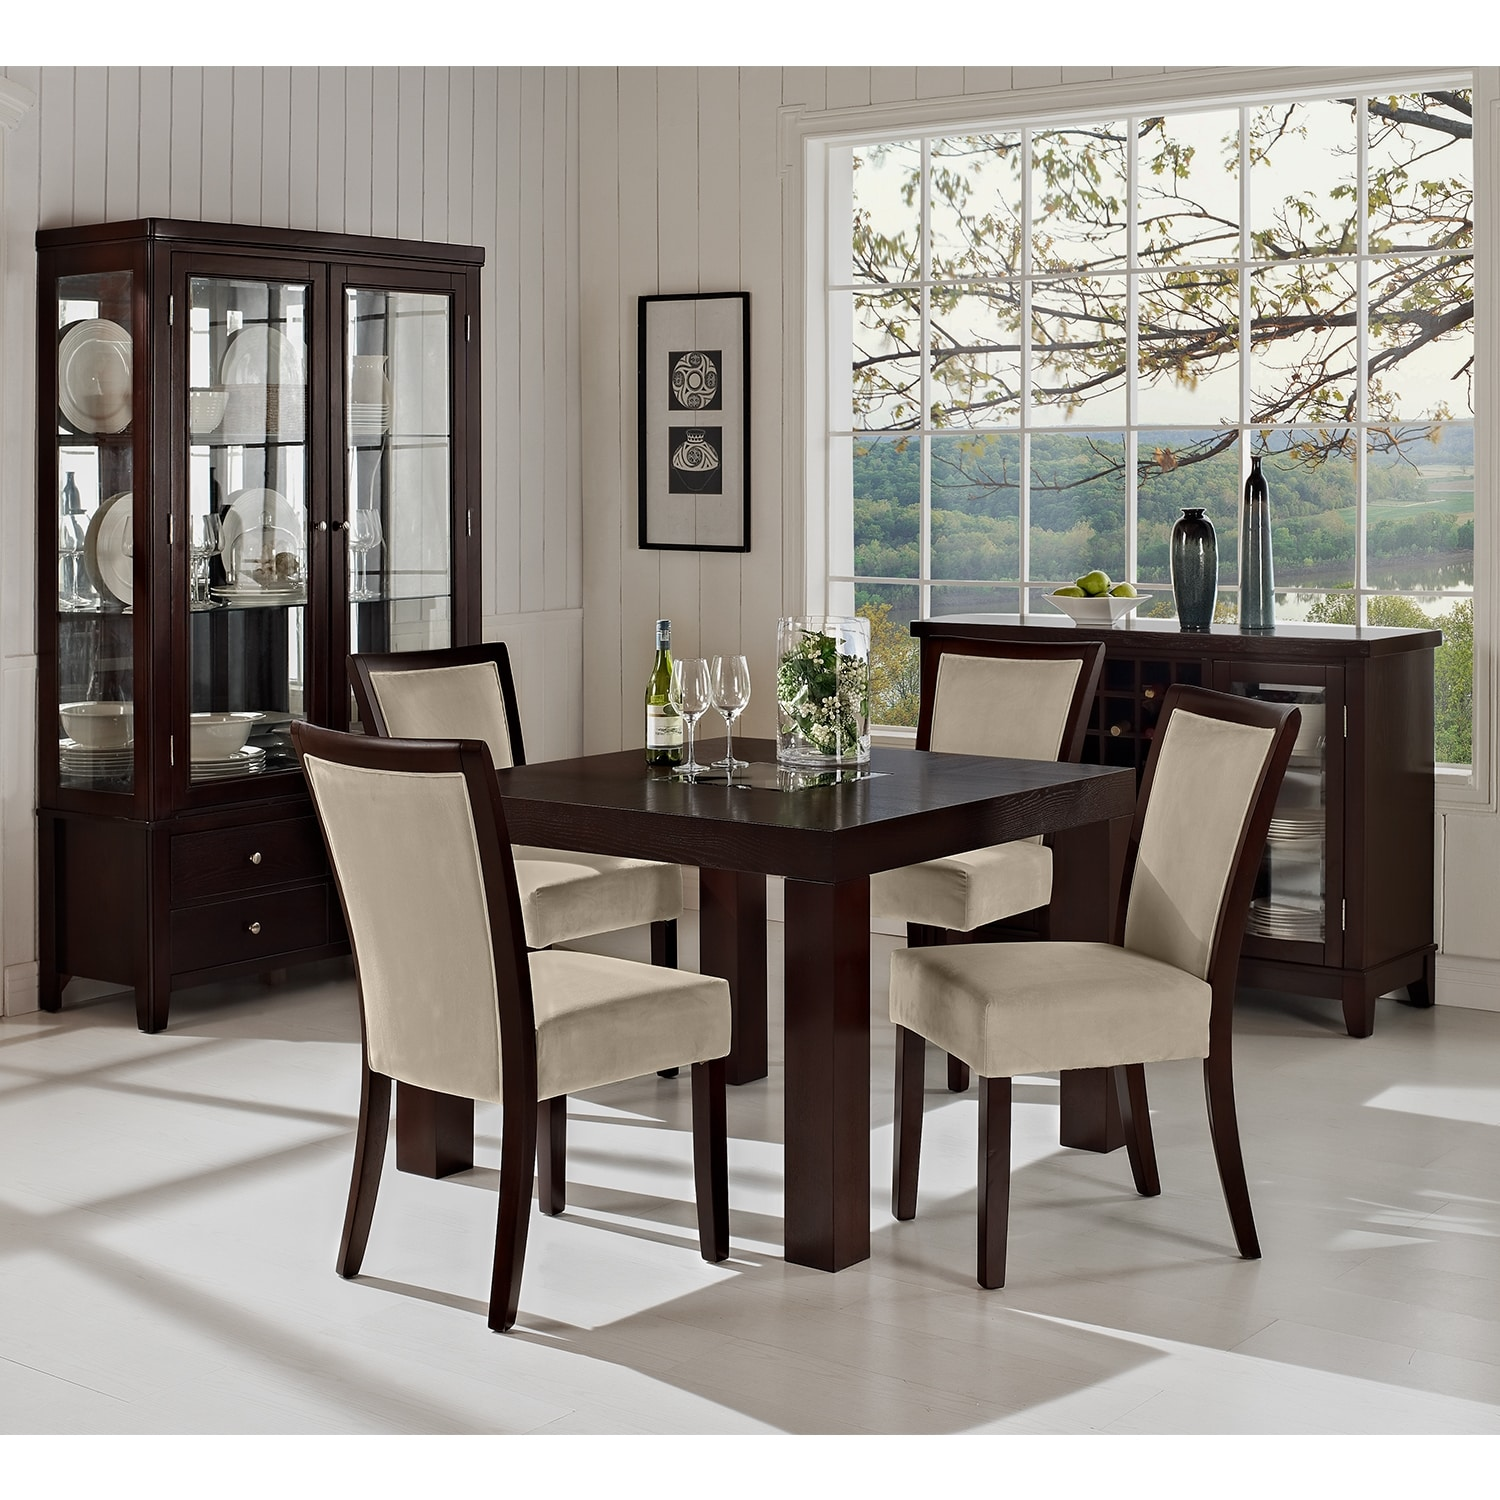 Tango dining room 42 dining table value city furniture for Dining room tables value city